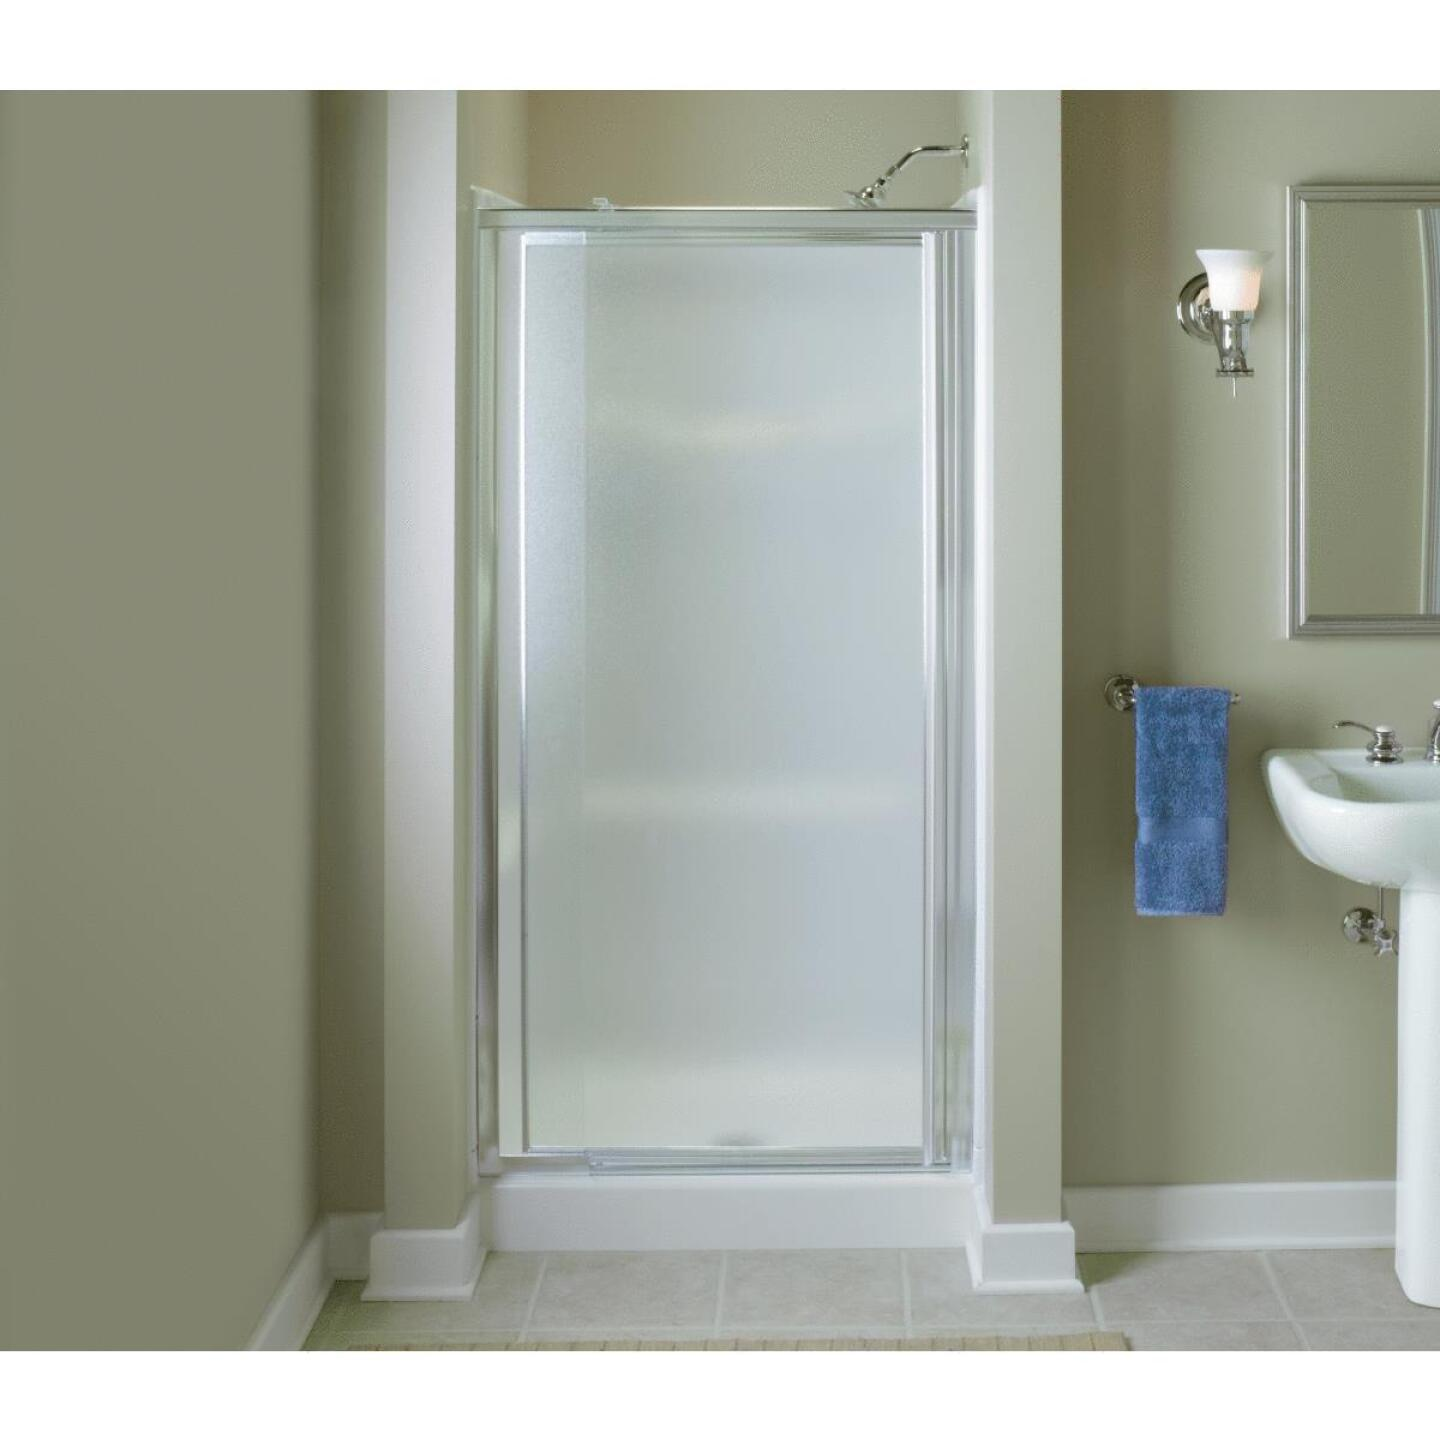 Sterling Vista Pivot II 36 In. W. X 65-1/2 In. H. Chrome Pebbled Glass Shower Door Image 2